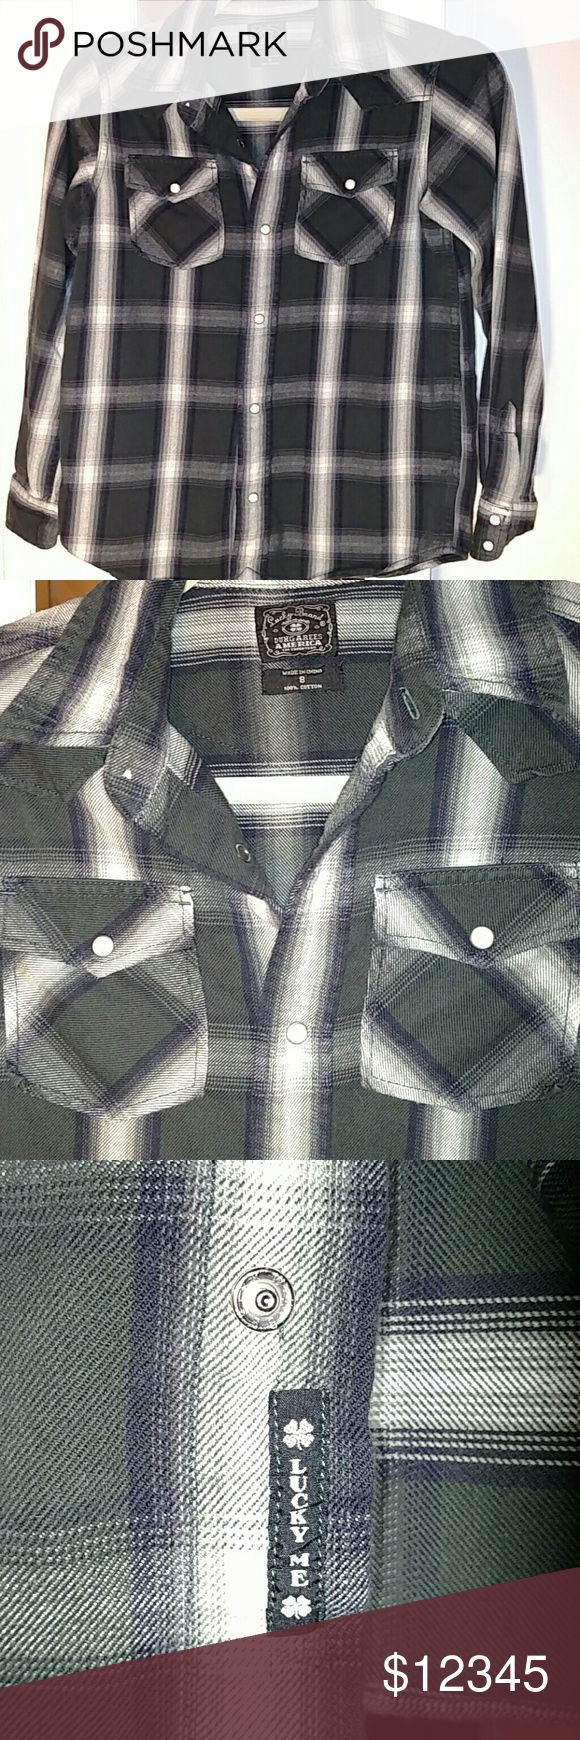 "BOYS SHIRT SIZE: 8 😍. ""Lucky Me"" Adorable! Lucky Brand Dungarees America "" Too Tough To Die"" Plaid flannel shirt; (Black, grey, cream plaid) w/snap buttons, ""lucky me"" label.....Soo cute!   😍 Offers Welcomed & Encouraged 😄  Reasonable Offers Accepted 🛍  Every ❤ placed in a bundle eligible for discounts!😘 Lucky Brand Shirts & Tops Button Down Shirts"